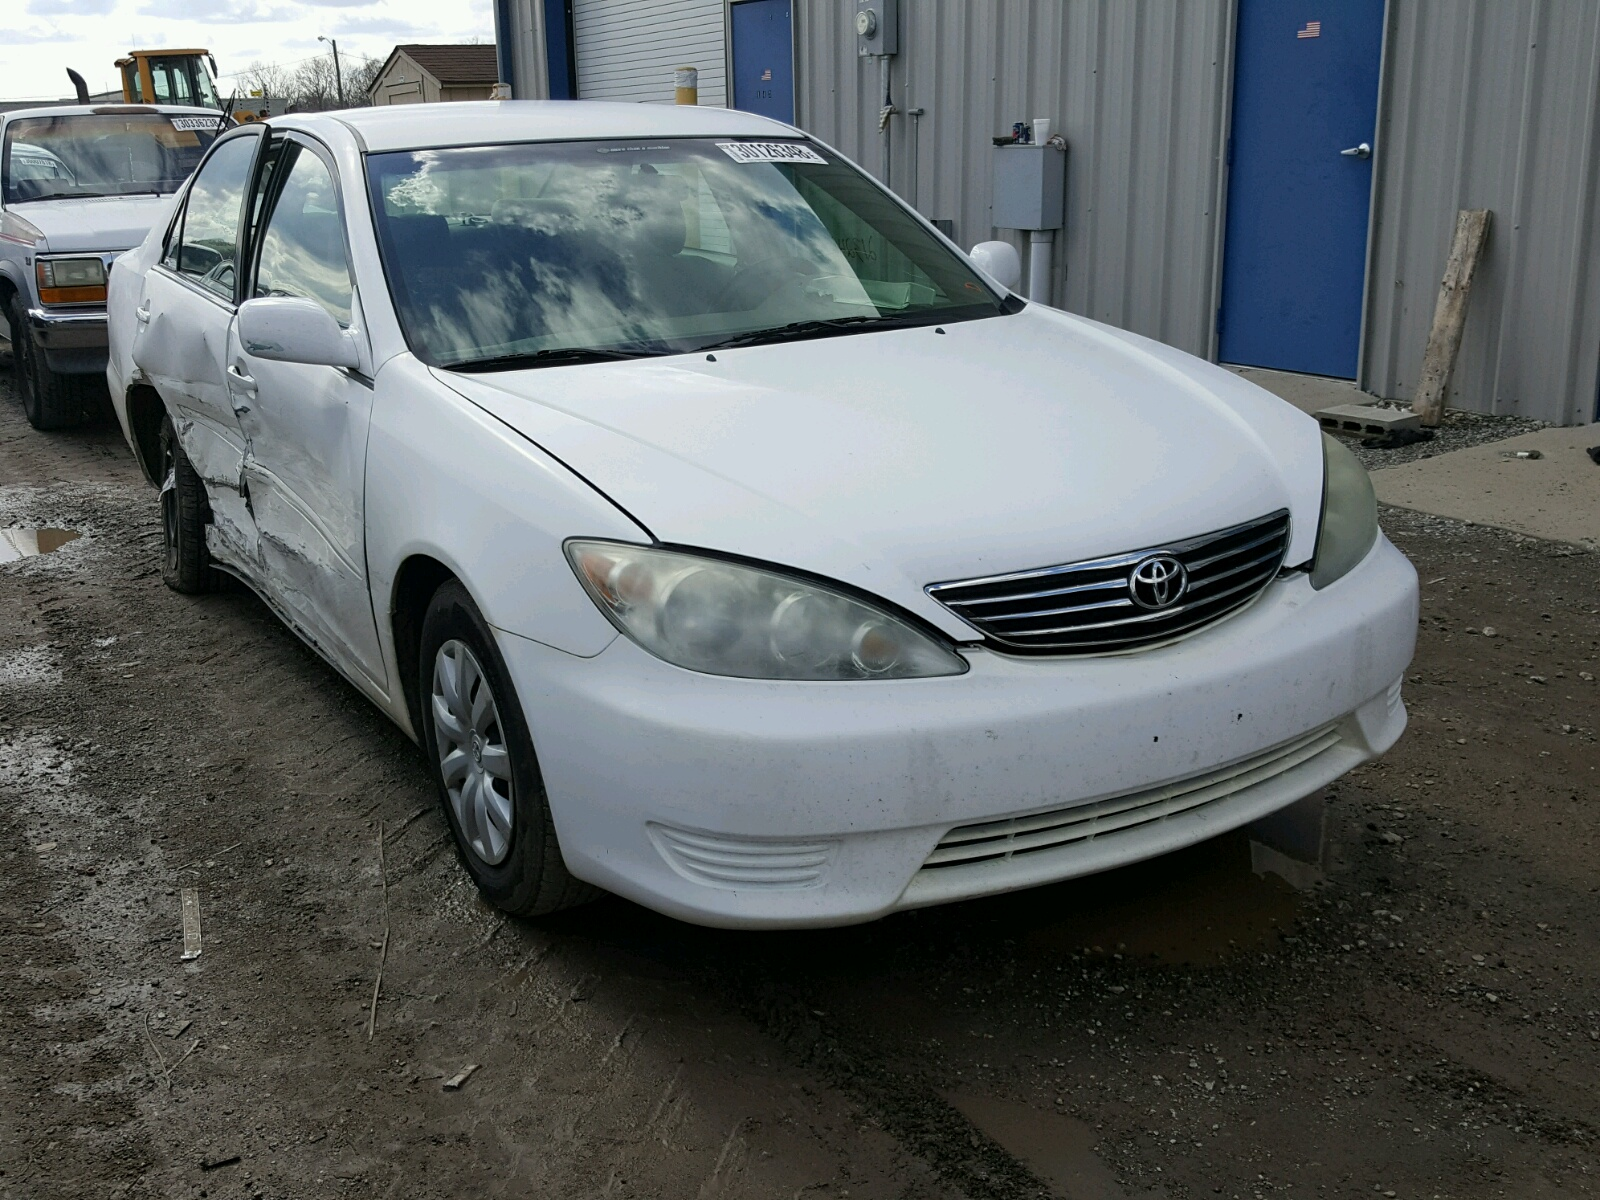 Auto Auction Ended on VIN 4T1SK11E5RU 1994 TOYOTA CAMRY BASE